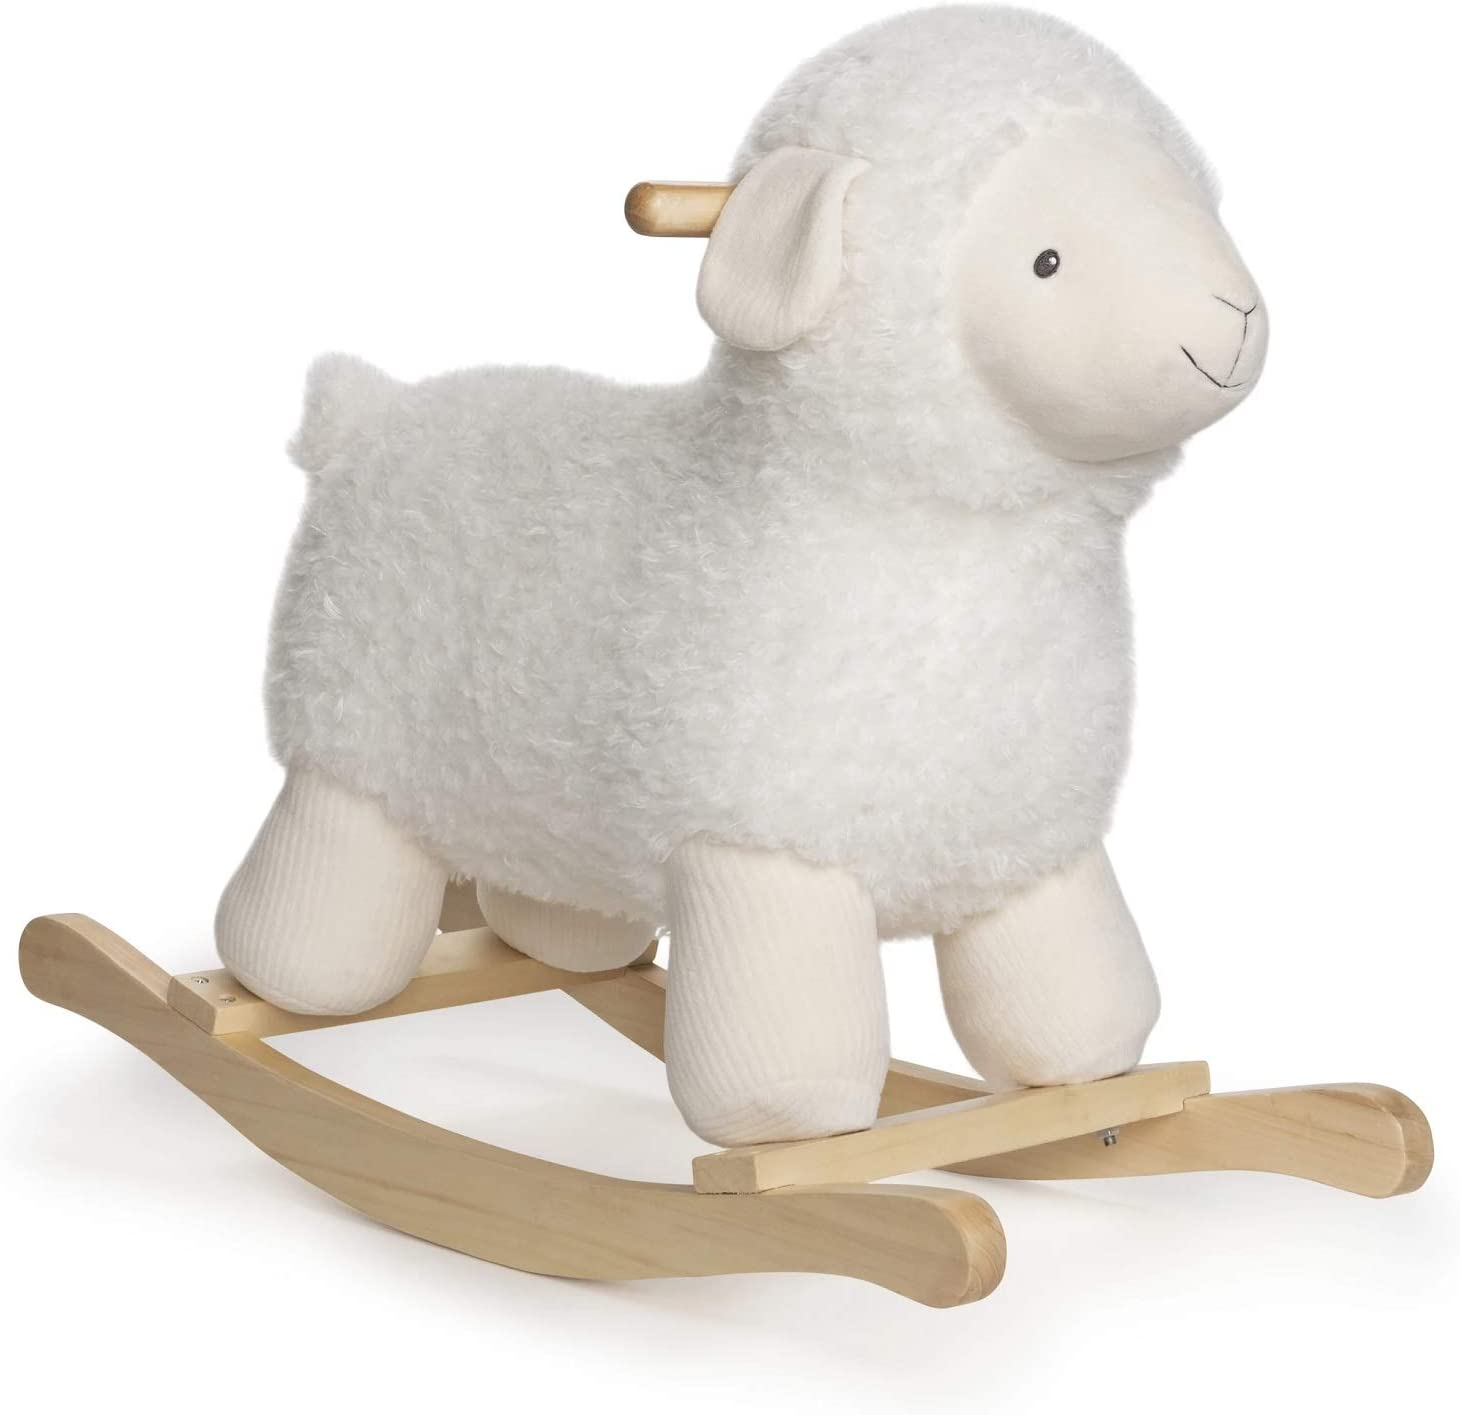 Wooden Sheep Toy Animal Lamb